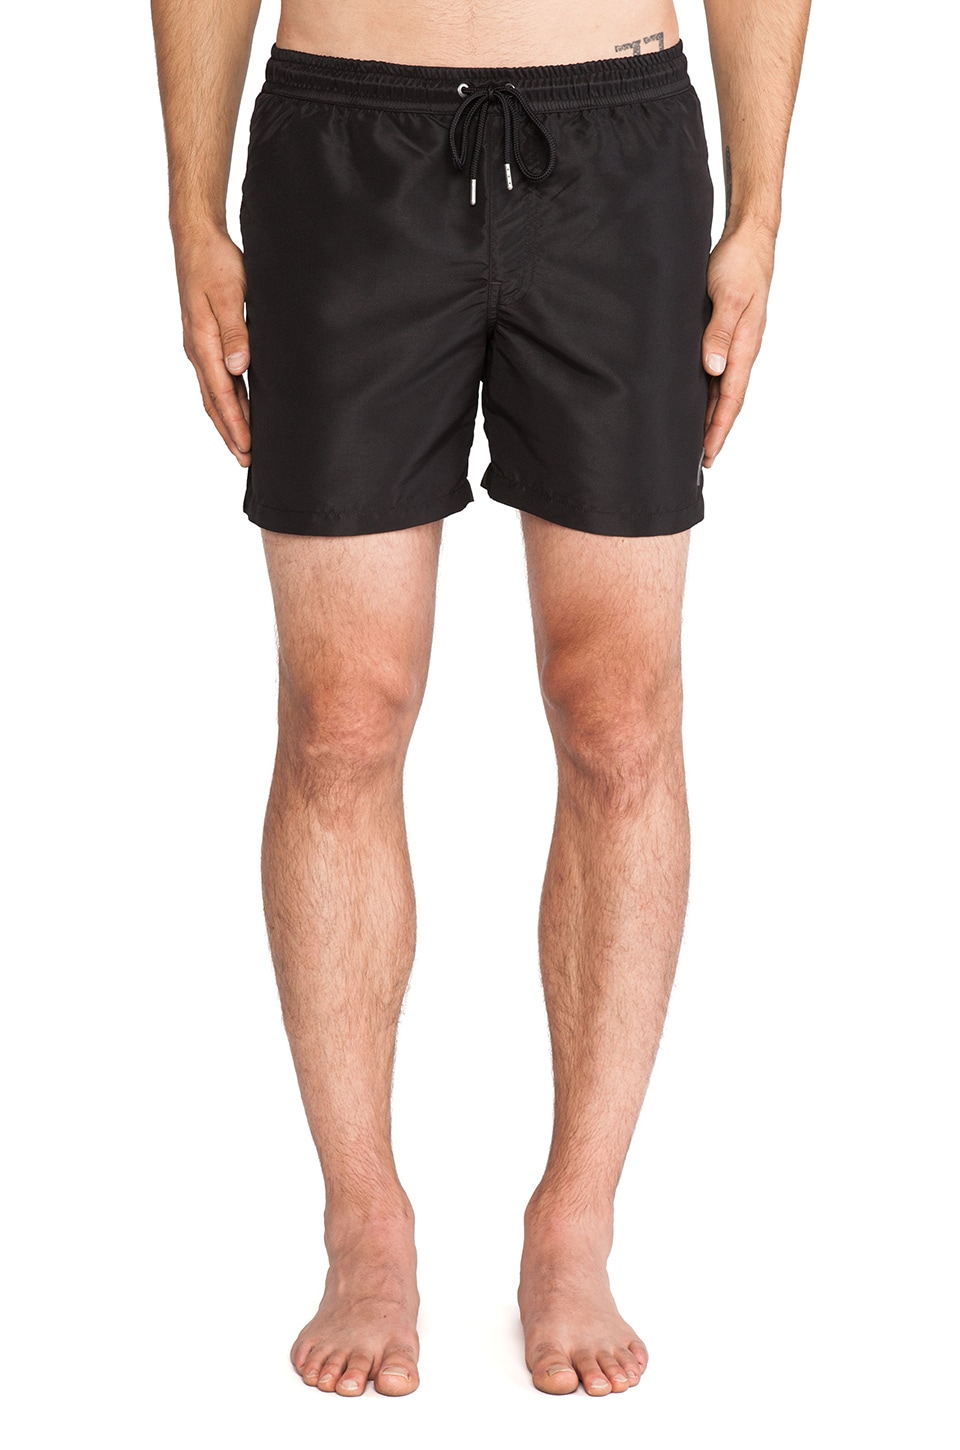 J. Lindeberg Banks 2.0 Solid Swim Shorts in Black